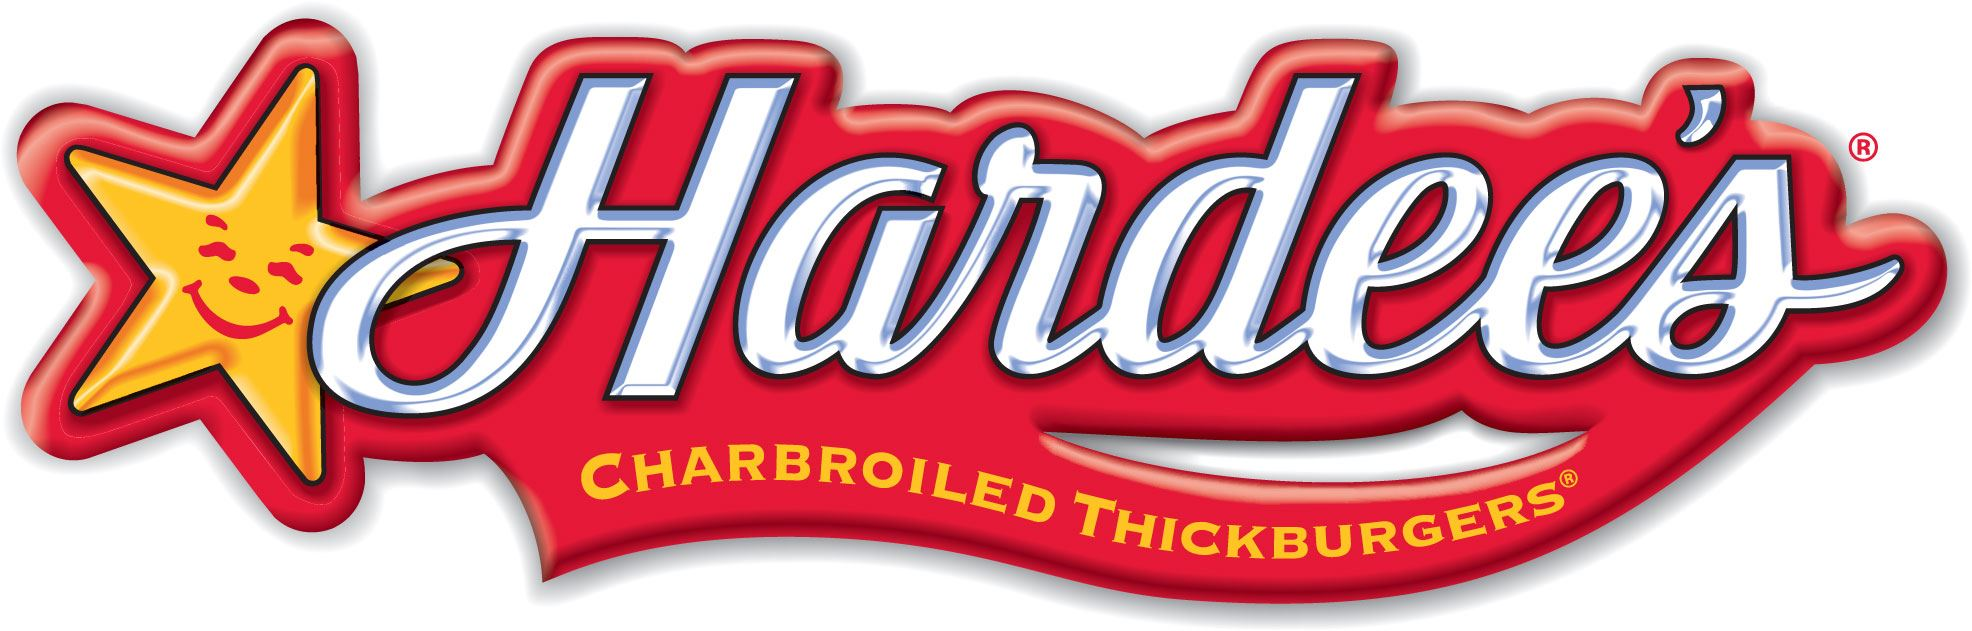 Hardee's Charbroiled Thickburgers